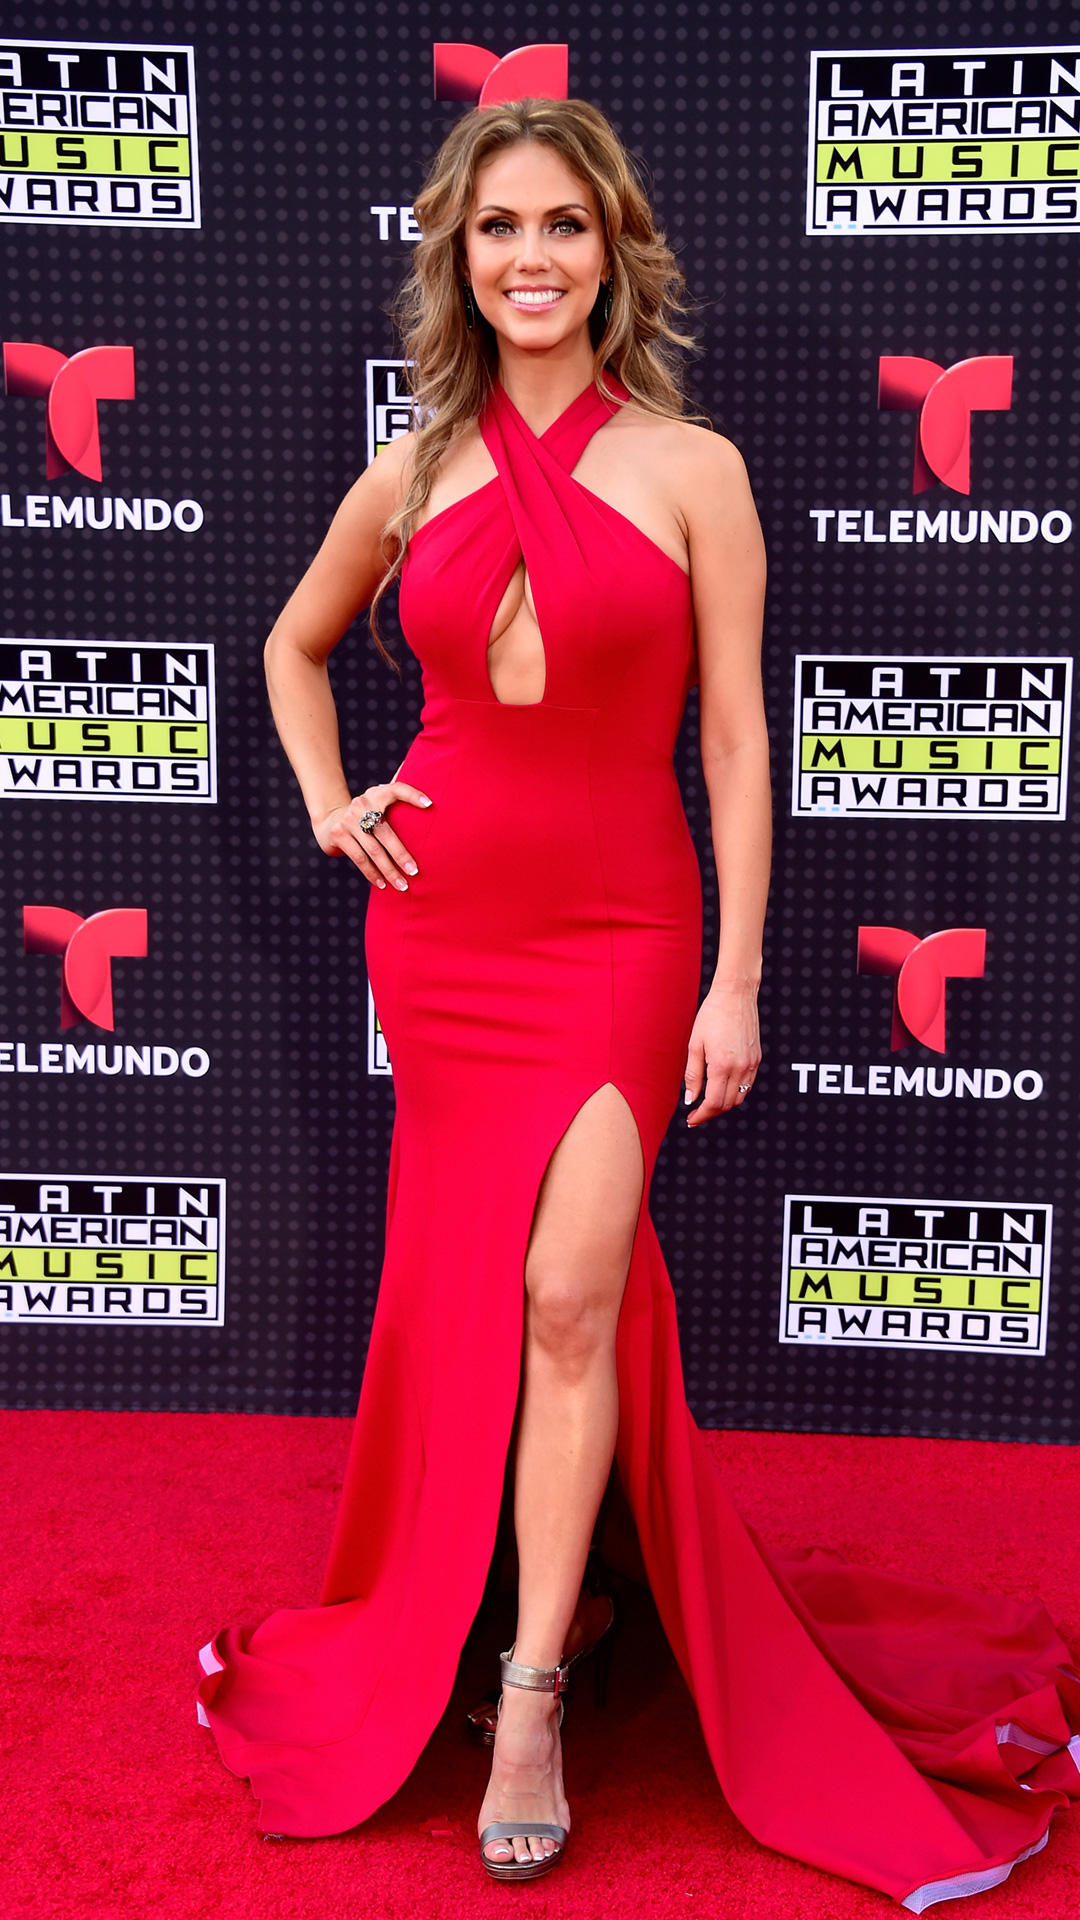 HOLLYWOOD, CA - OCTOBER 08:  Jessica Carrillo attends Telemundo's Latin American Music Awards at the Dolby Theatre on October 8, 2015 in Hollywood, California.  (Photo by Frazer Harrison/Getty Images)